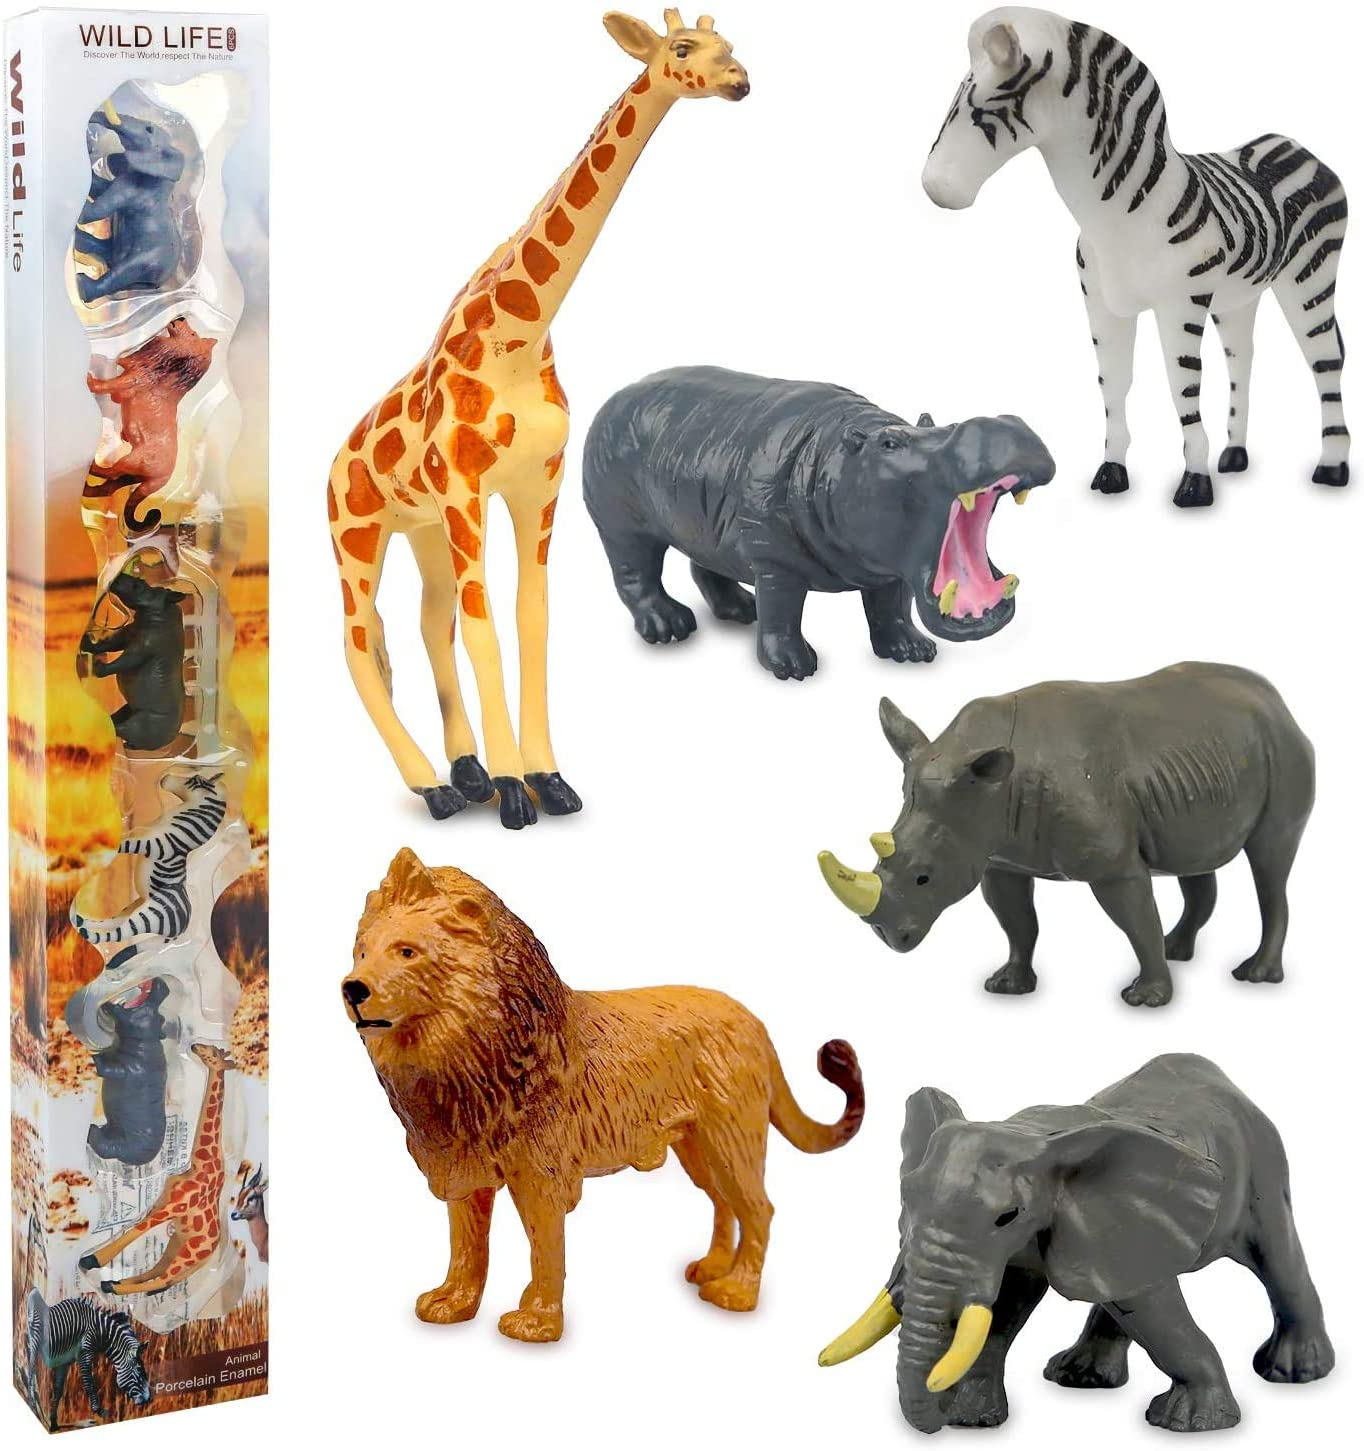 Safari Animal Toys Realistic Mini Wild Animal Figurines Sets, Party Cake Topper and Decorations for Boys Toddlers